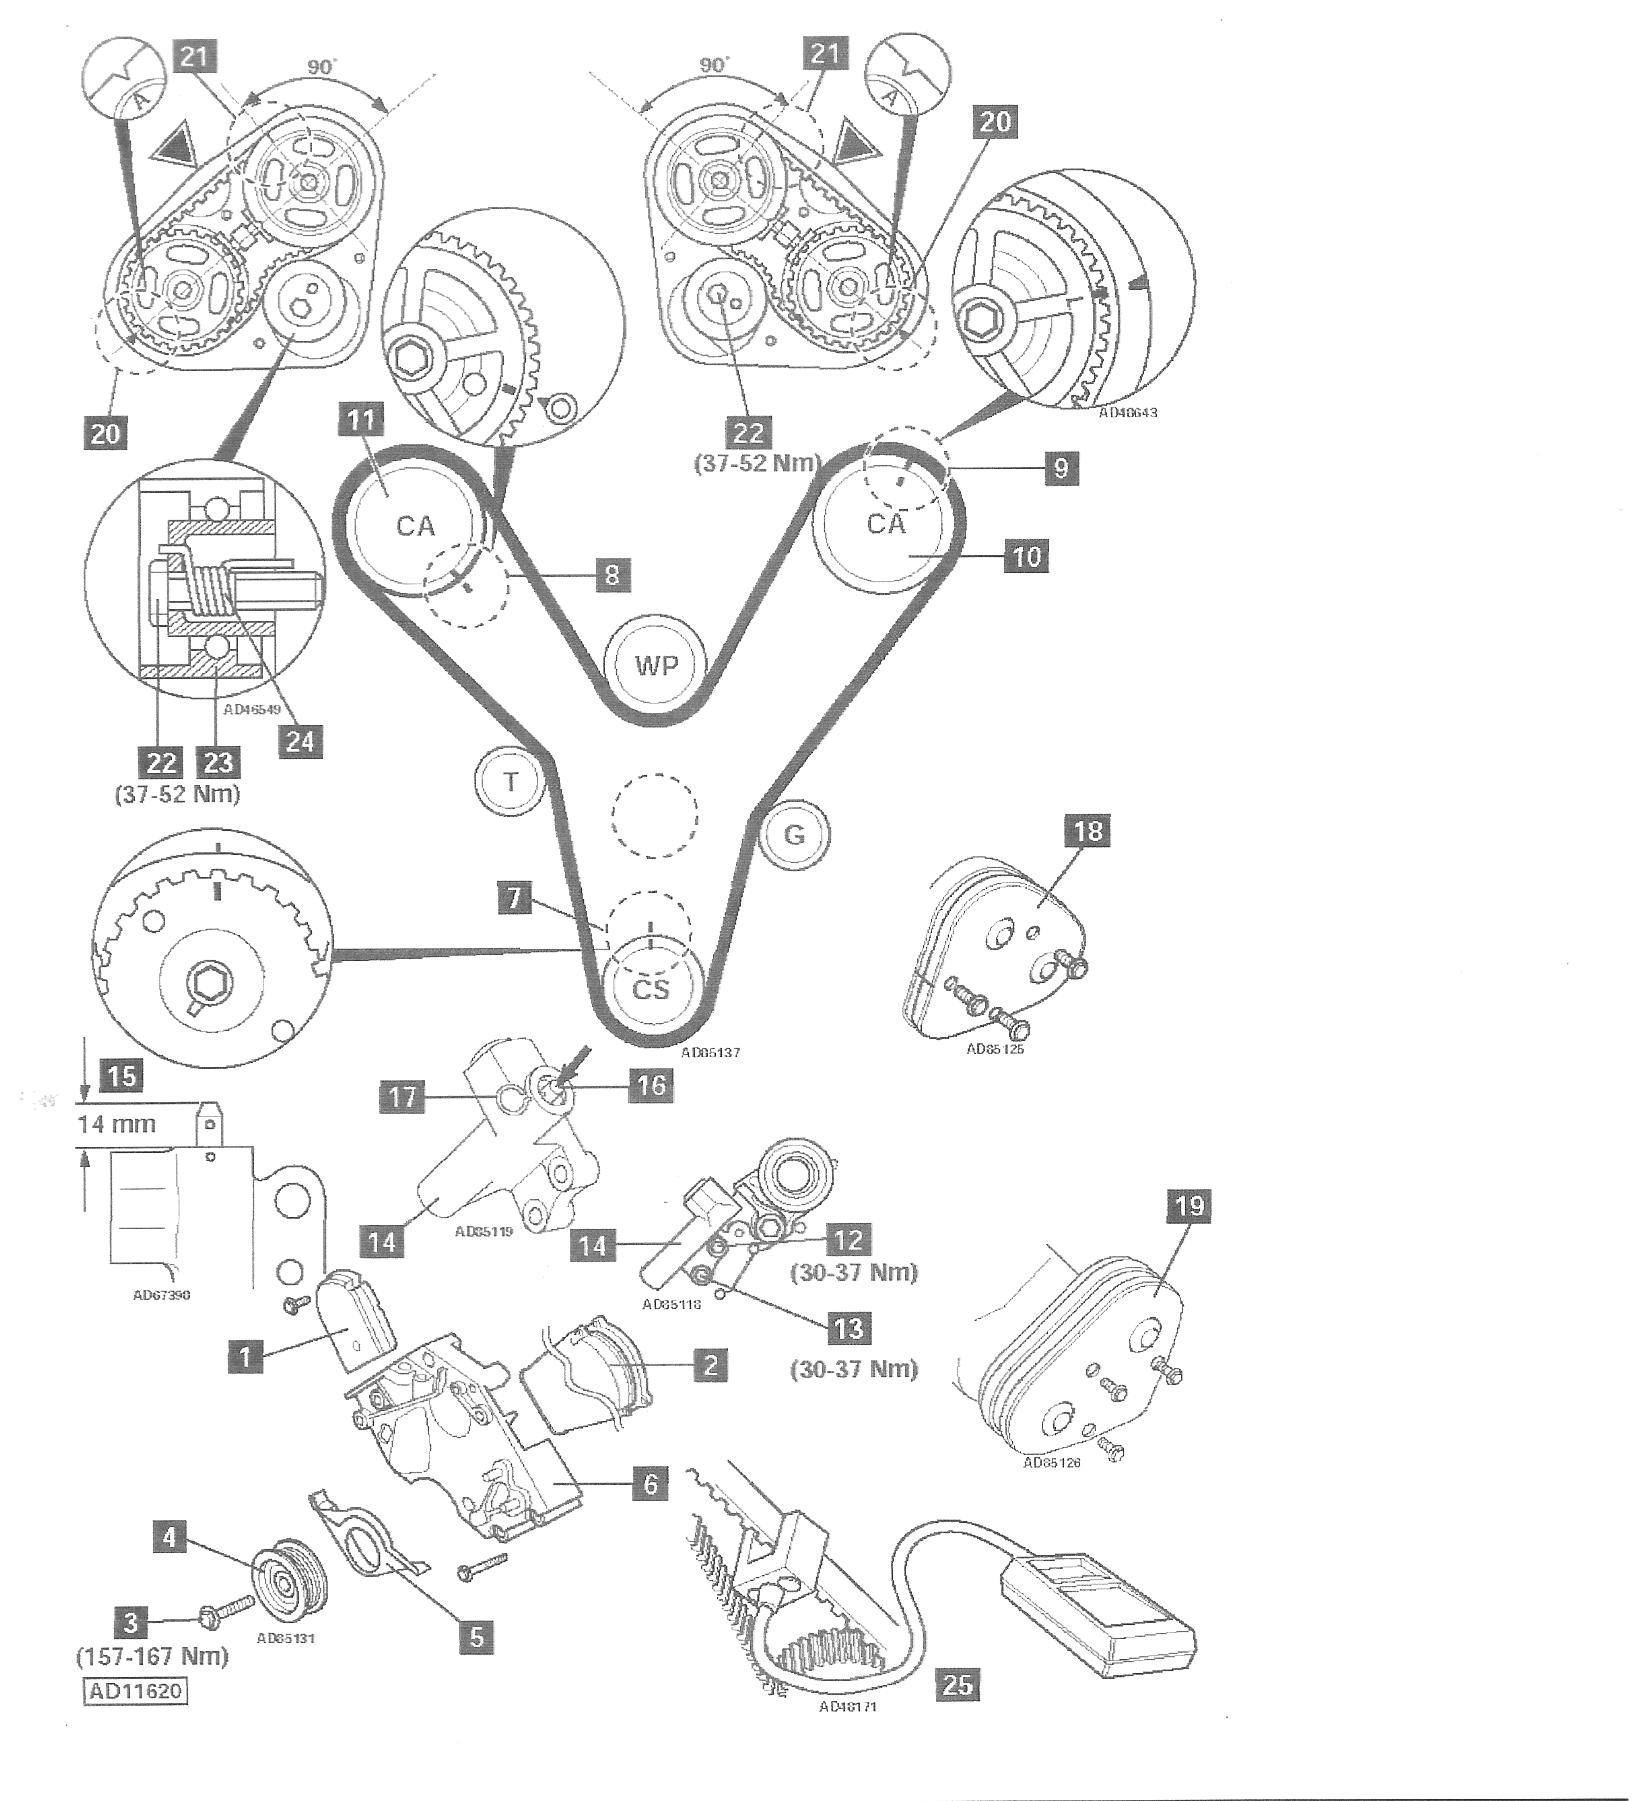 2010-11-30_103351_kia_carnival_timing_belt Wire Diagram Kia Sedona on kia rio starter replacement, kia rio electrical problems, kia optima serpentine belt diagram, kia transmission diagram, kia amanti replacement, audi tt 2004 diagram, 2003 kia sedona radiator diagram, kia sedona motor mount diagram, cadillac srx 2004 diagram, mitsubishi galant 2004 diagram, hyundai 3.5 engine diagram, 2002 kia sedona serpentine belt diagram, 2006 kia sedona fuse diagram, 2006 kia sedona ac diagram, kia sedona parts diagram, 2003 kia sedona serpentine belt diagram, lincoln ls 2004 diagram, toyota tundra 2004 diagram, kia amanti ignition failure sensor, ford expedition 2004 diagram,